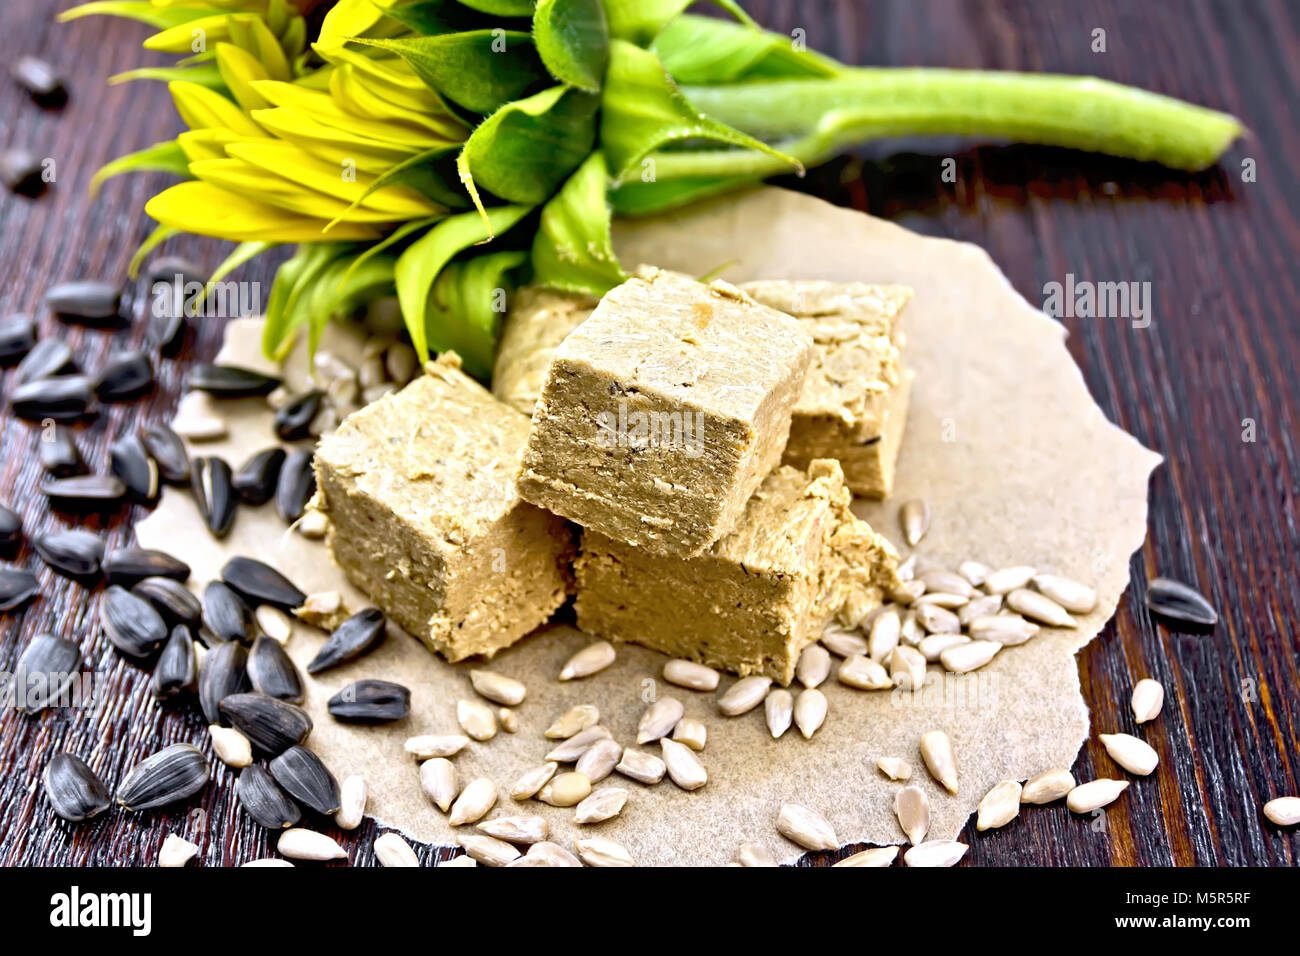 Eastern sweet halva sunflower on paper, sunflower seeds and flower on a wooden board background - Stock Image